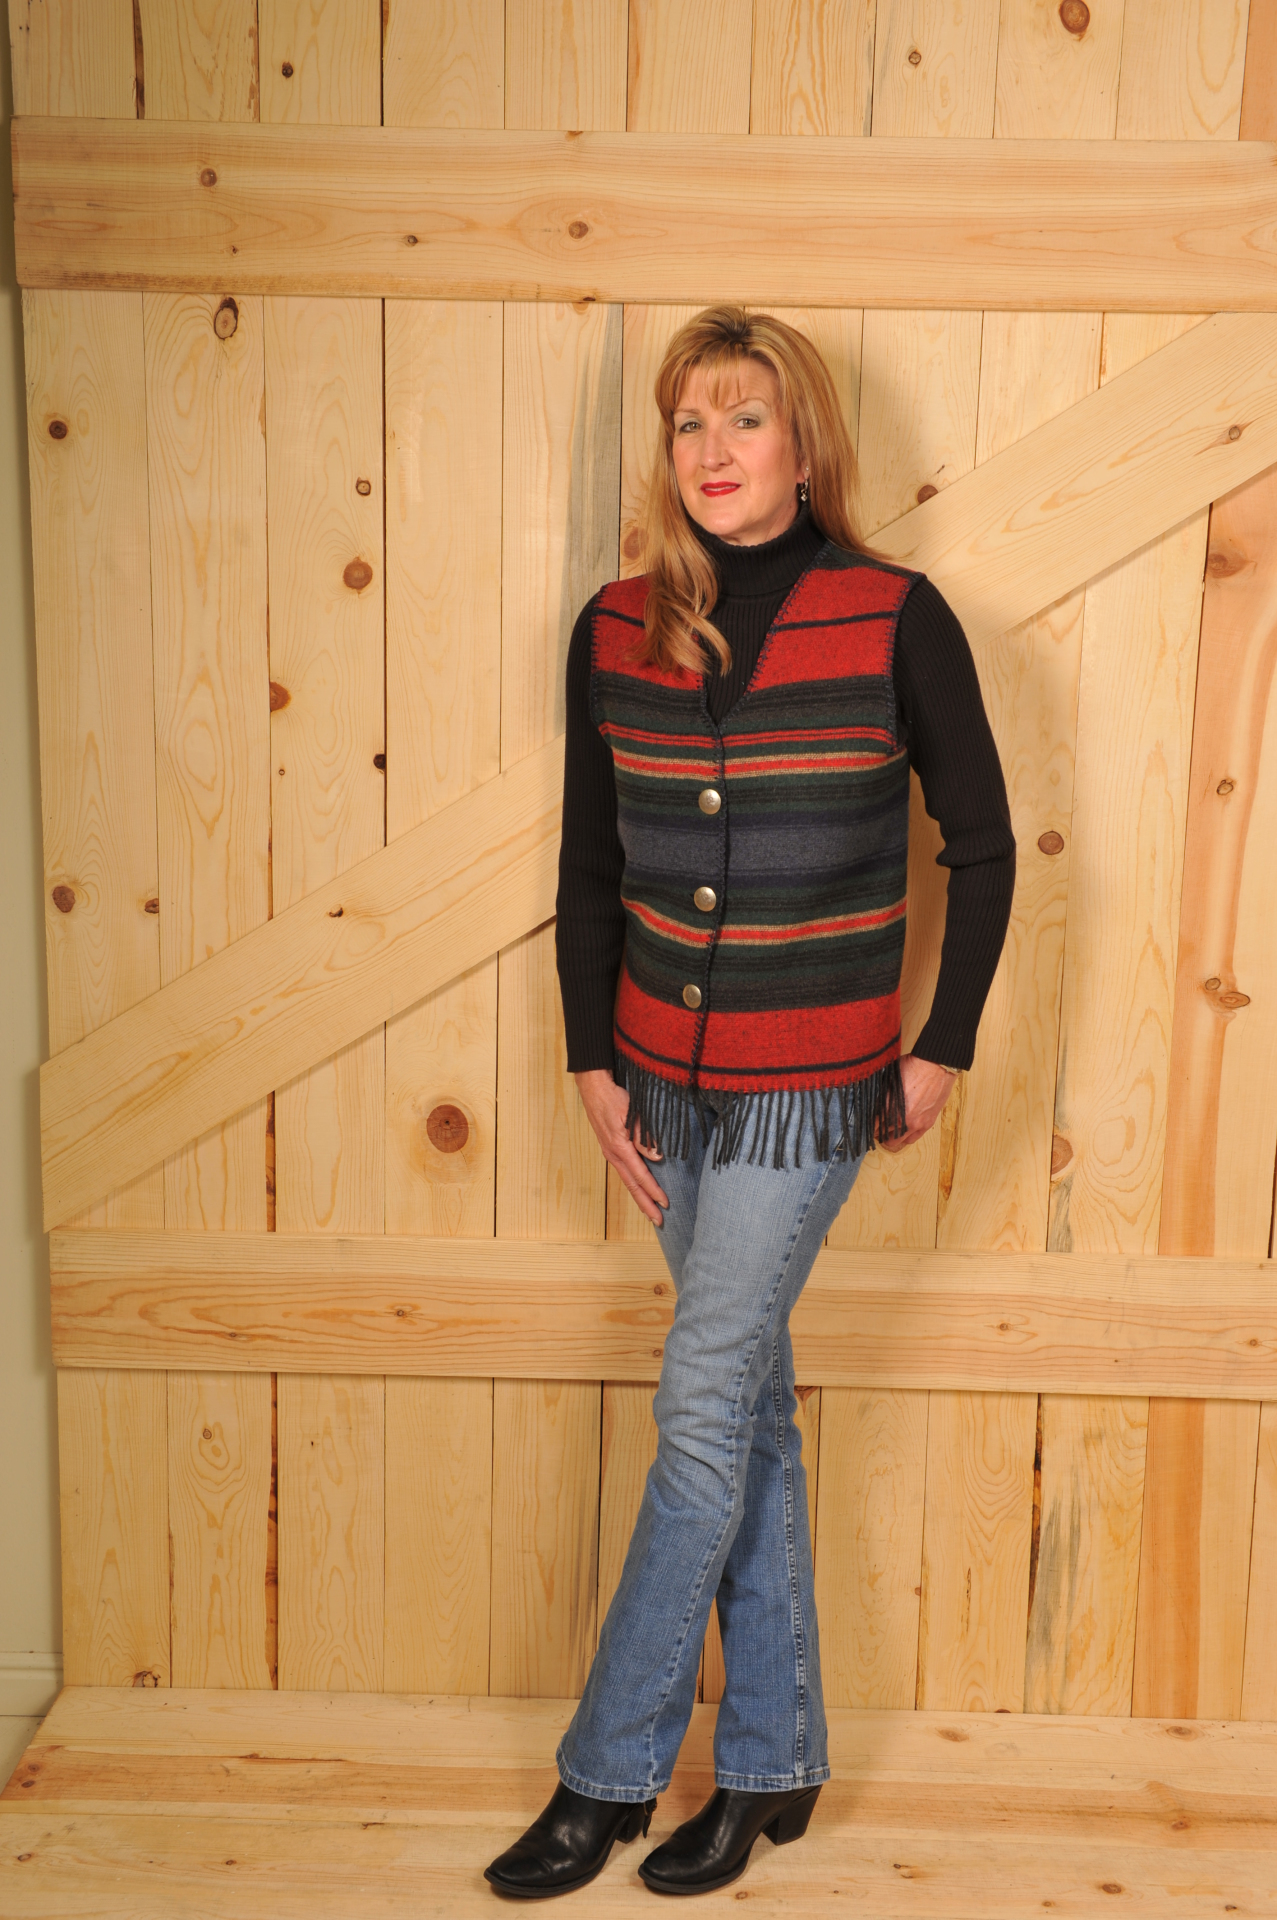 121SNF - NAVY SERAPE FRINGE V-VEST                                 WAS $74.95 - NOW $37.47